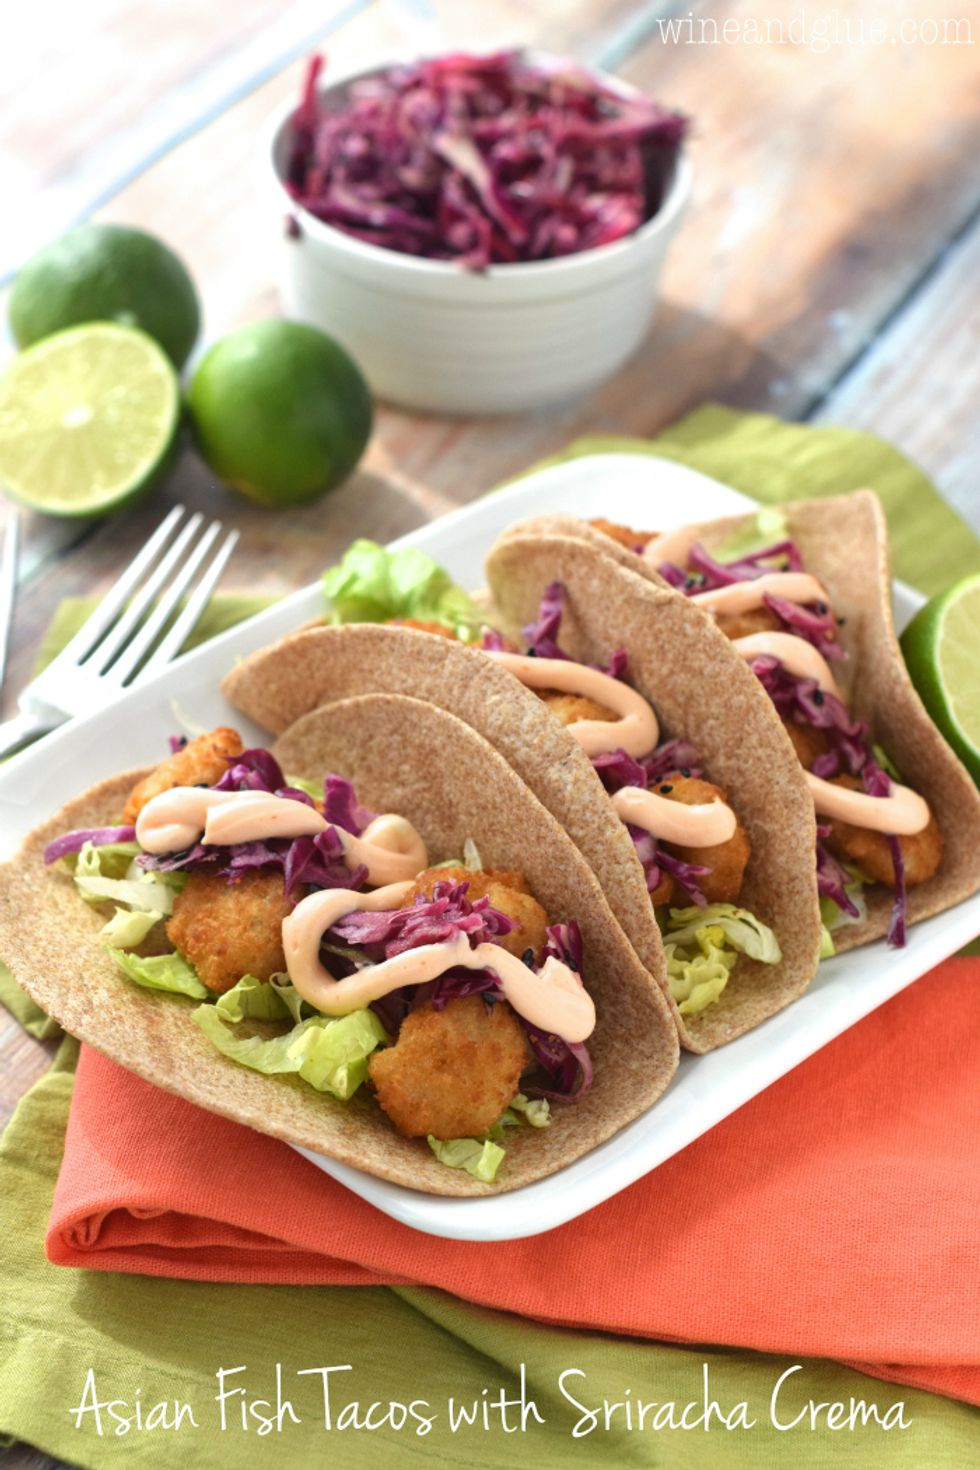 Asian Fish Tacos with Sriracha Crema ...